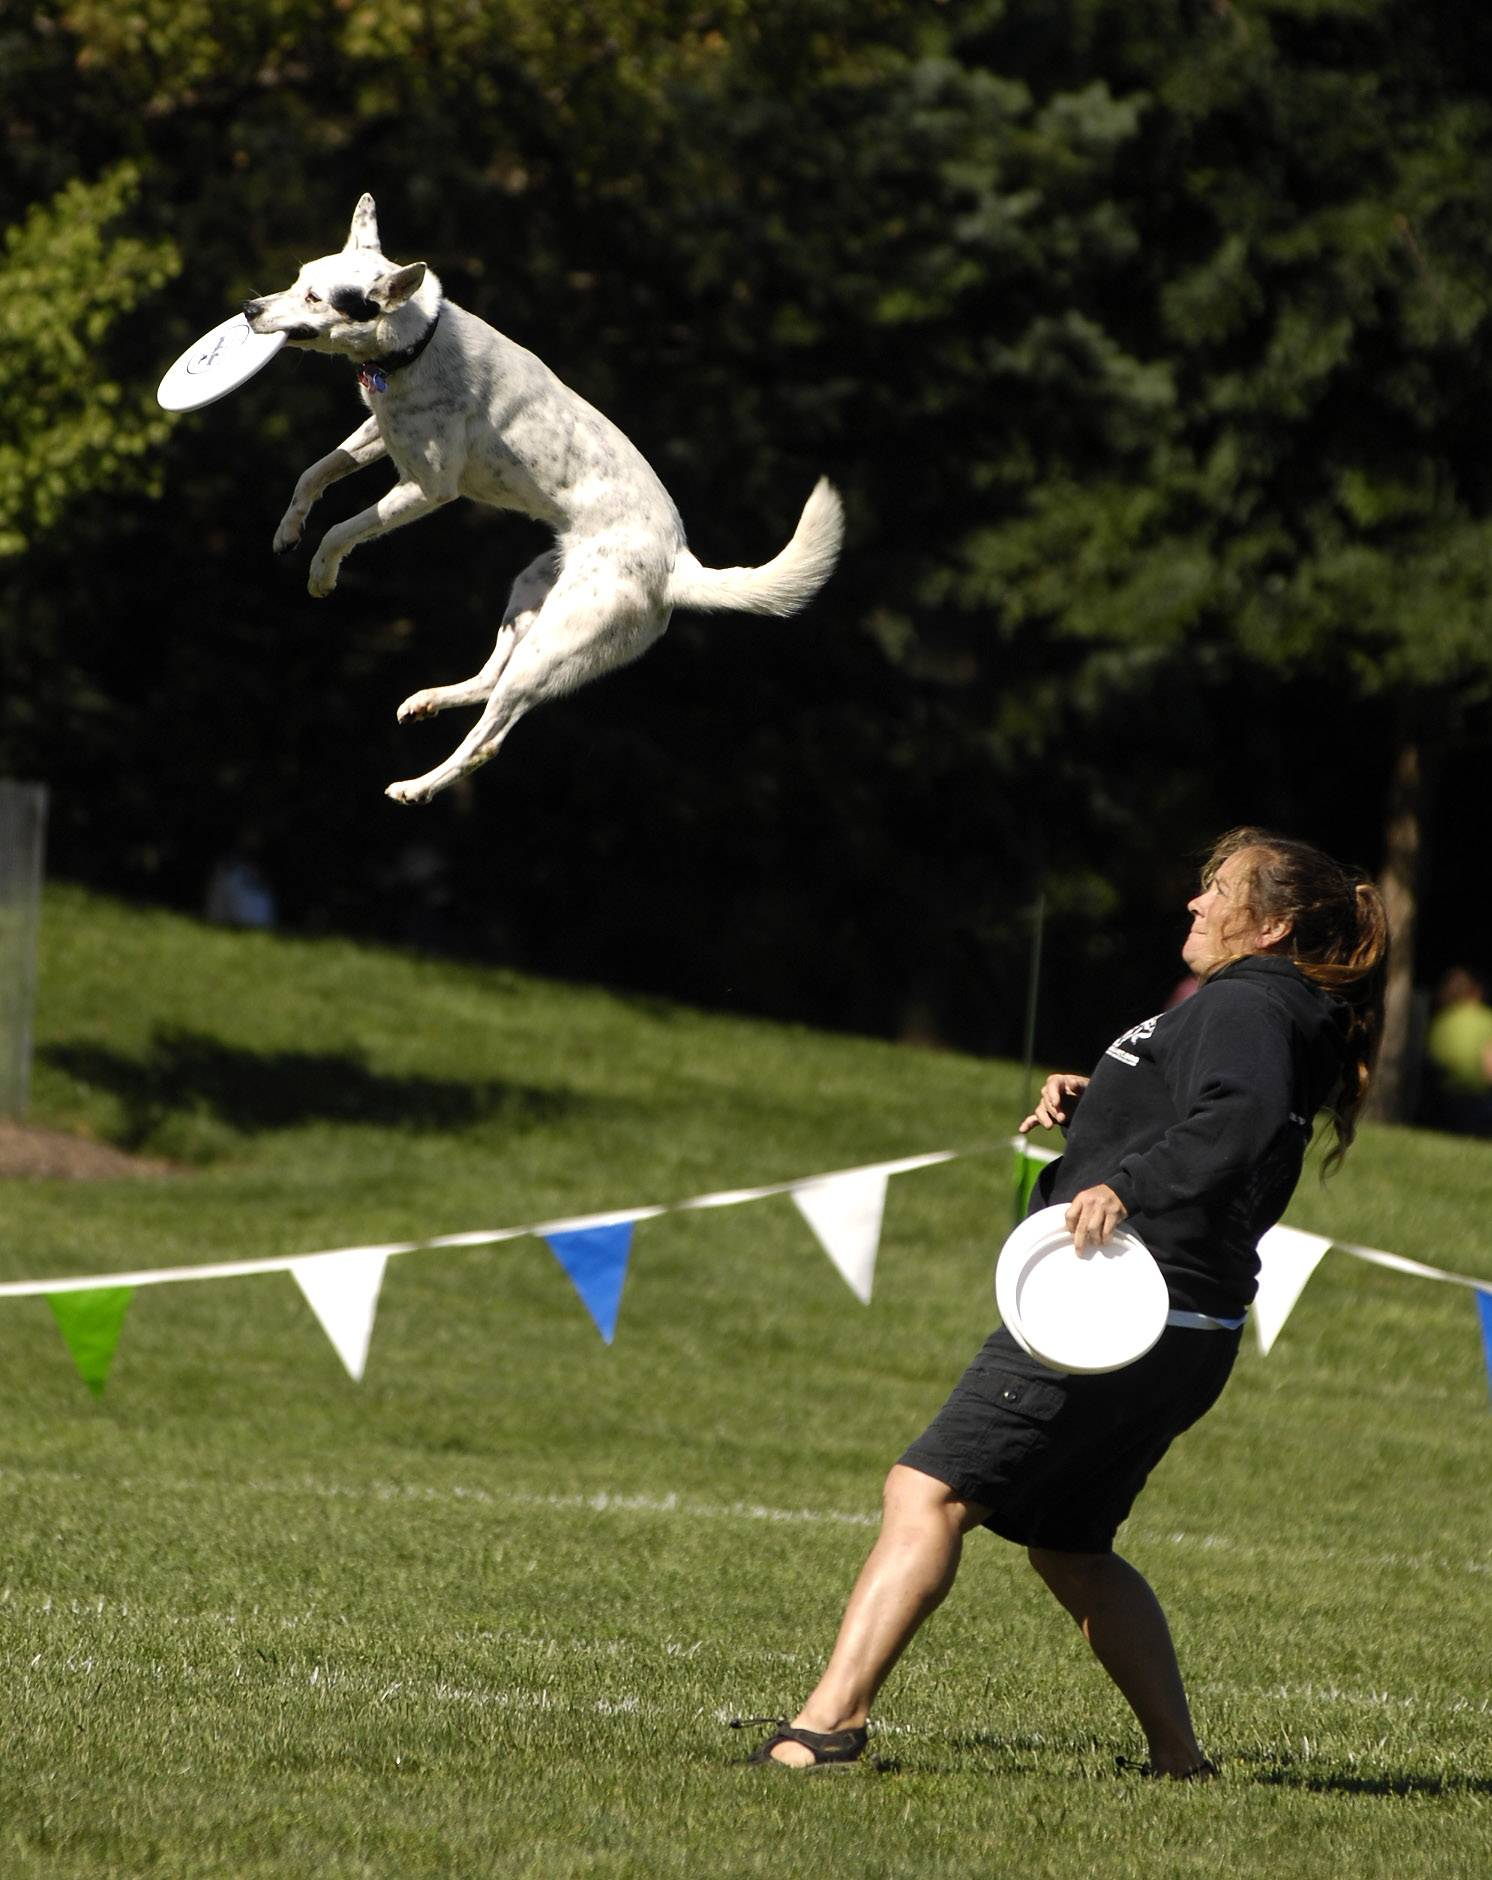 Tracy Custer and her dog Chill, of St. Louis, MO, competed in a previous year of the Ashley Whippet K-9 Frisbee® World Championships.